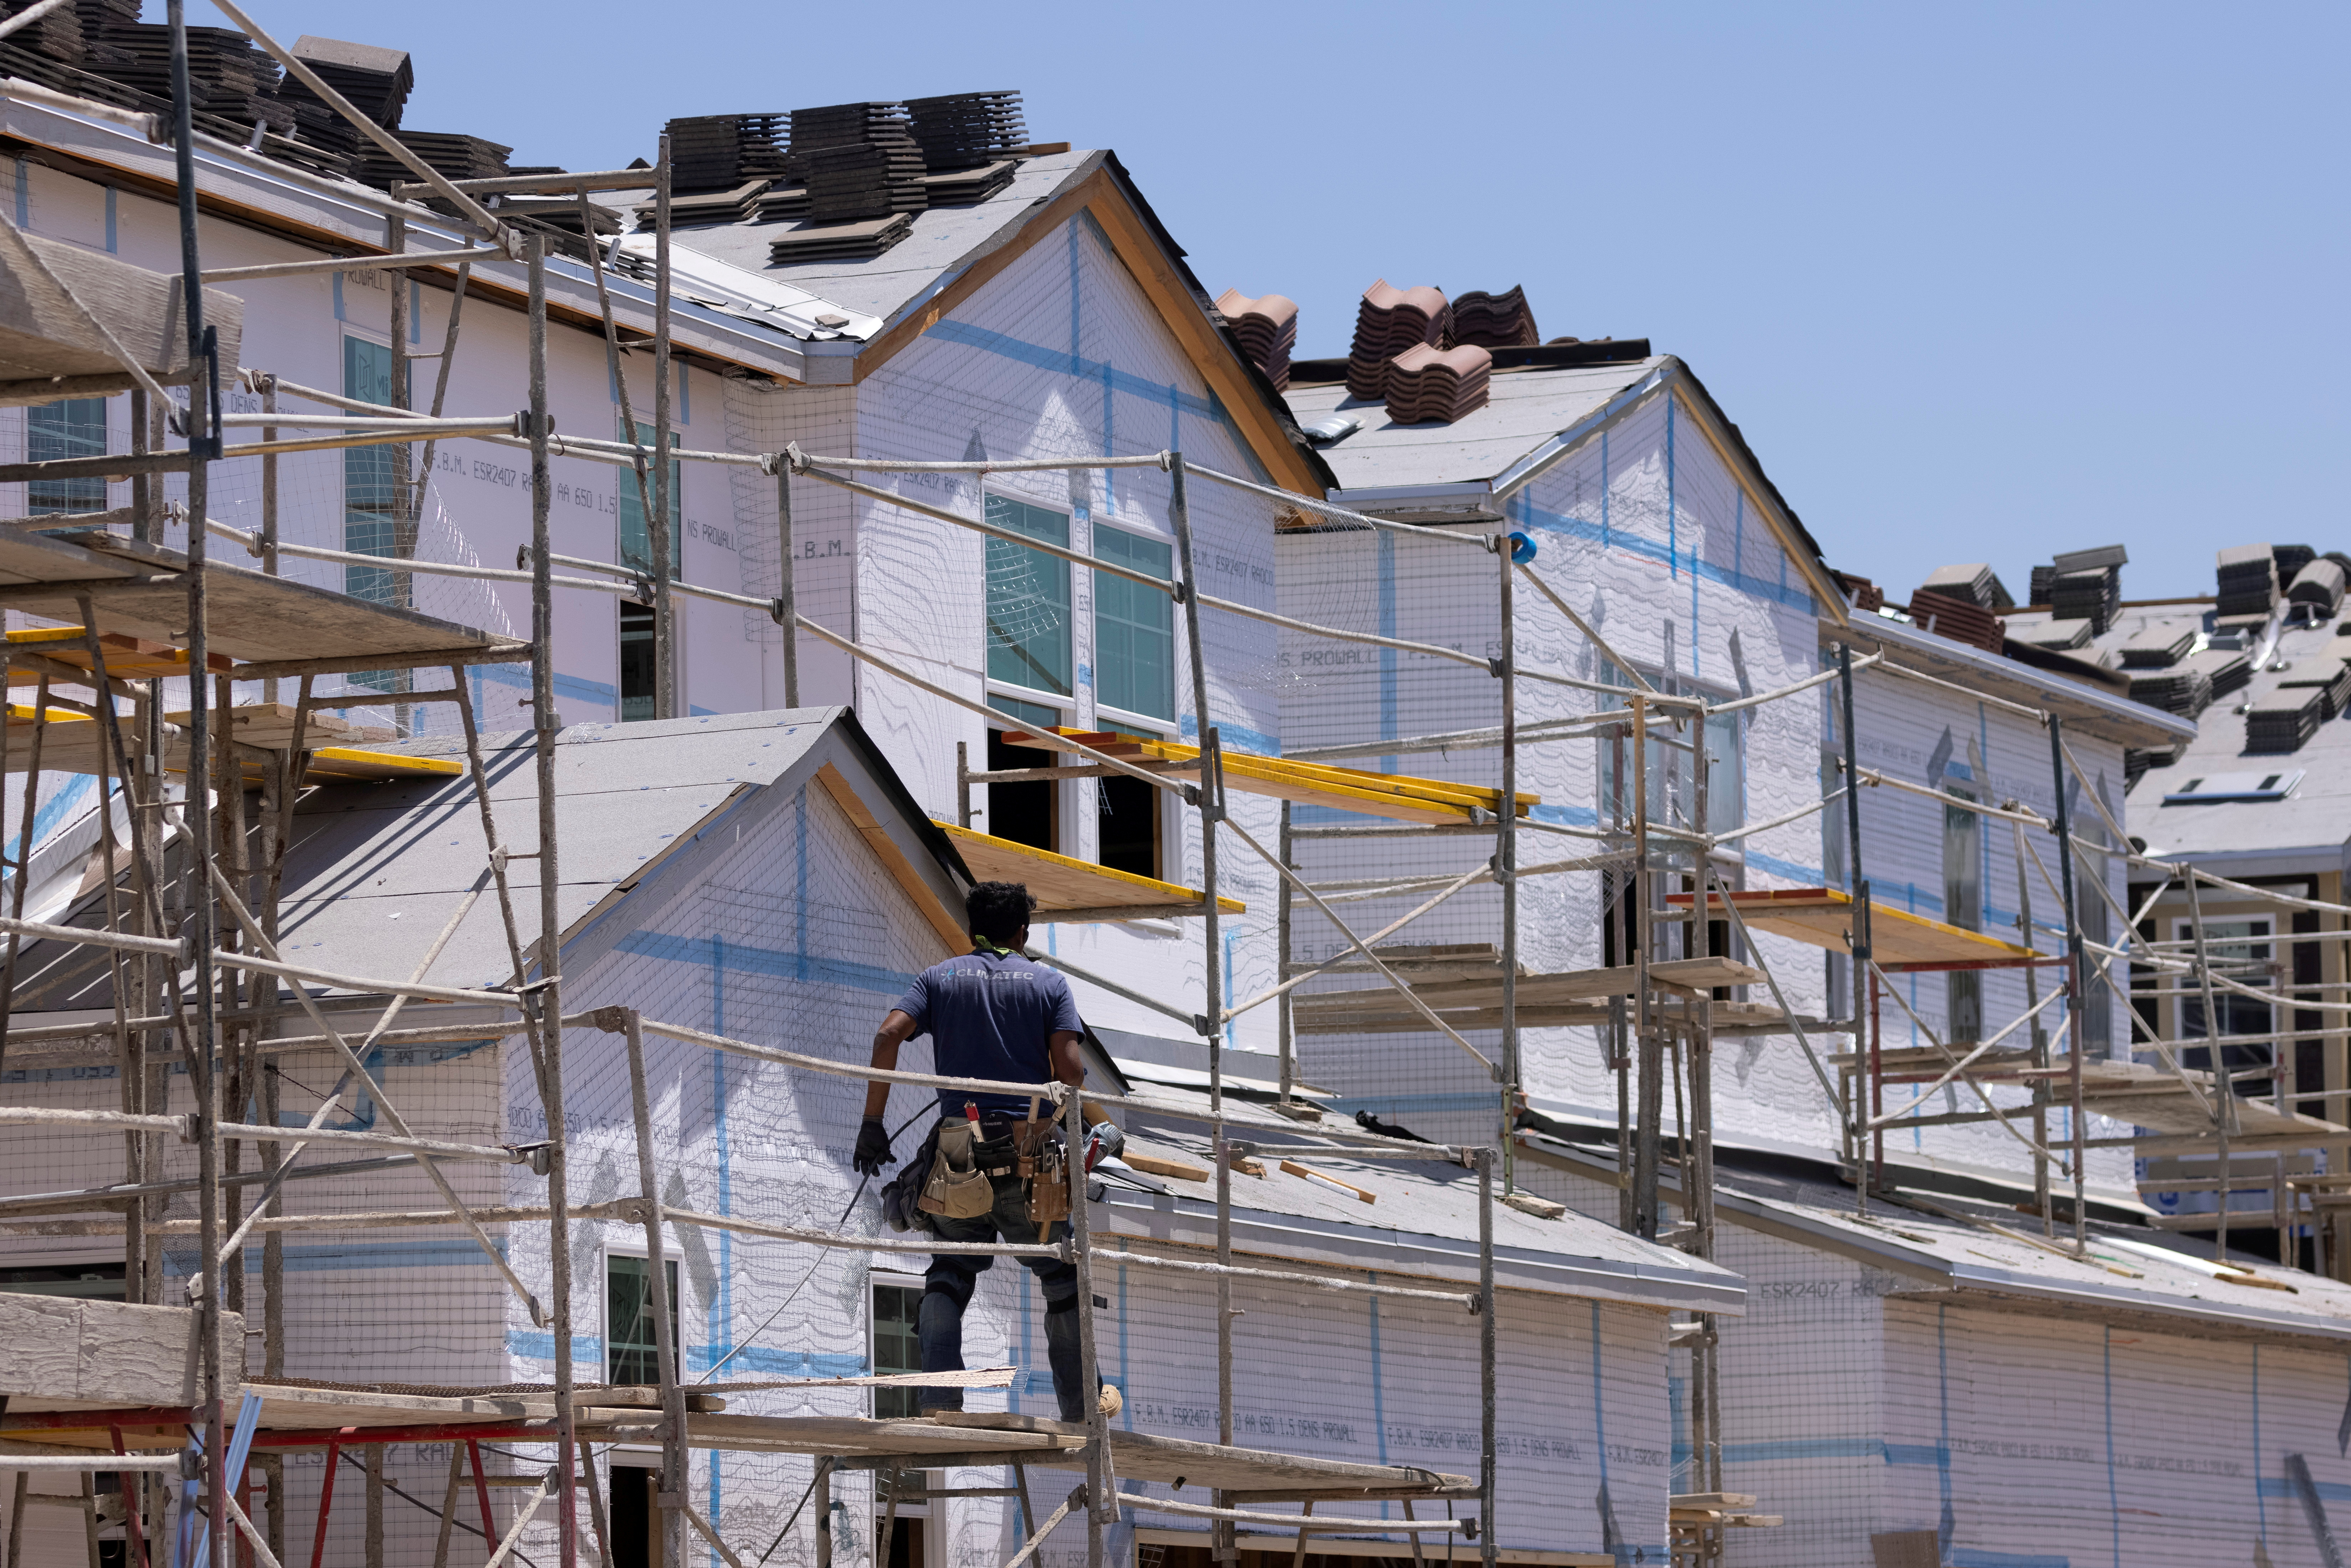 Residential single family homes construction by KB Home are shown under construction in the community of Valley Center, California, U.S. June 3, 2021. REUTERS/Mike Blake/File Photo